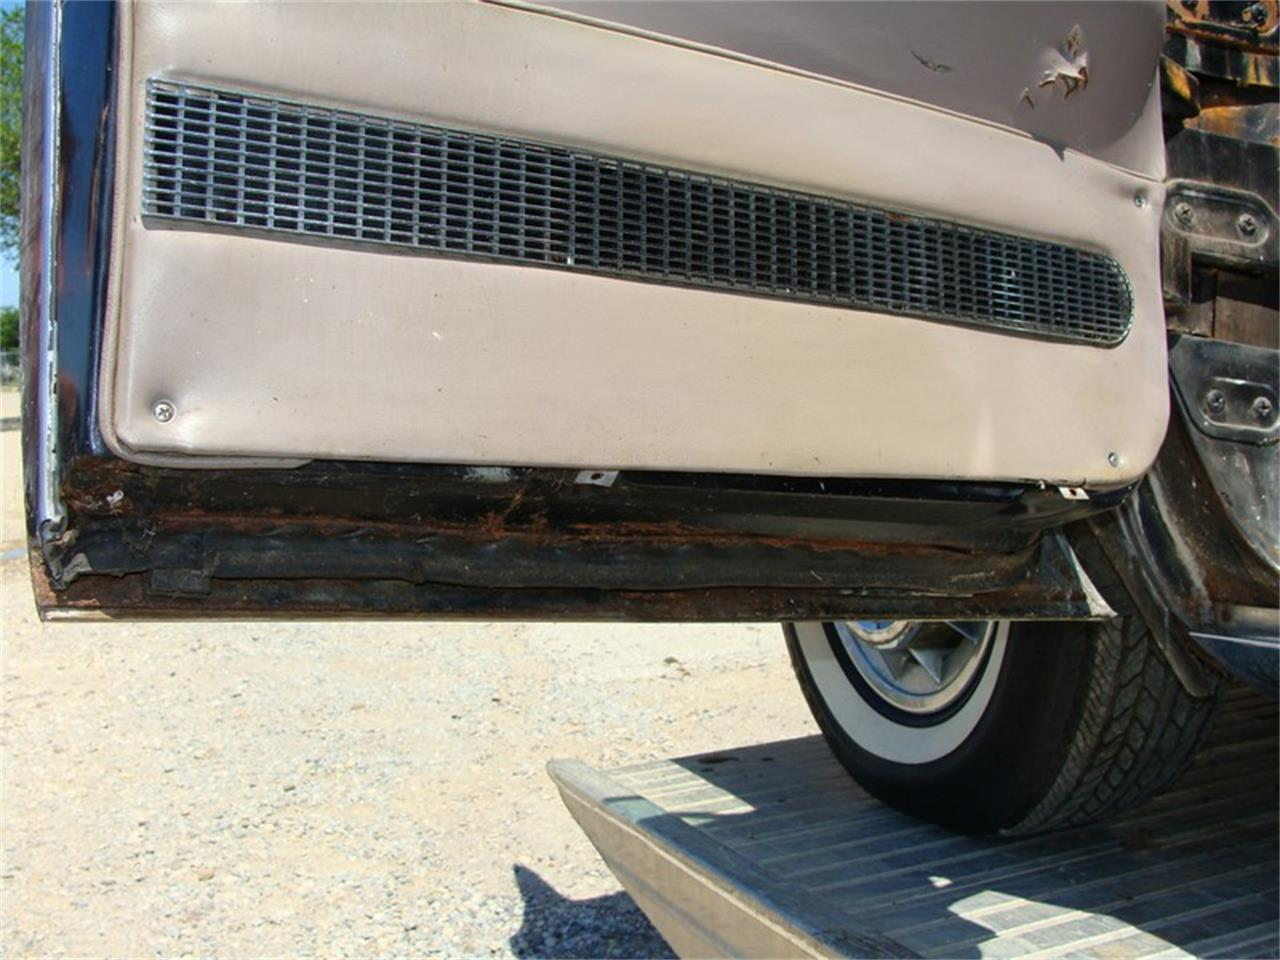 Large Picture of 1958 Cadillac Eldorado Brougham Offered by Pete's Classic Cars - QELZ